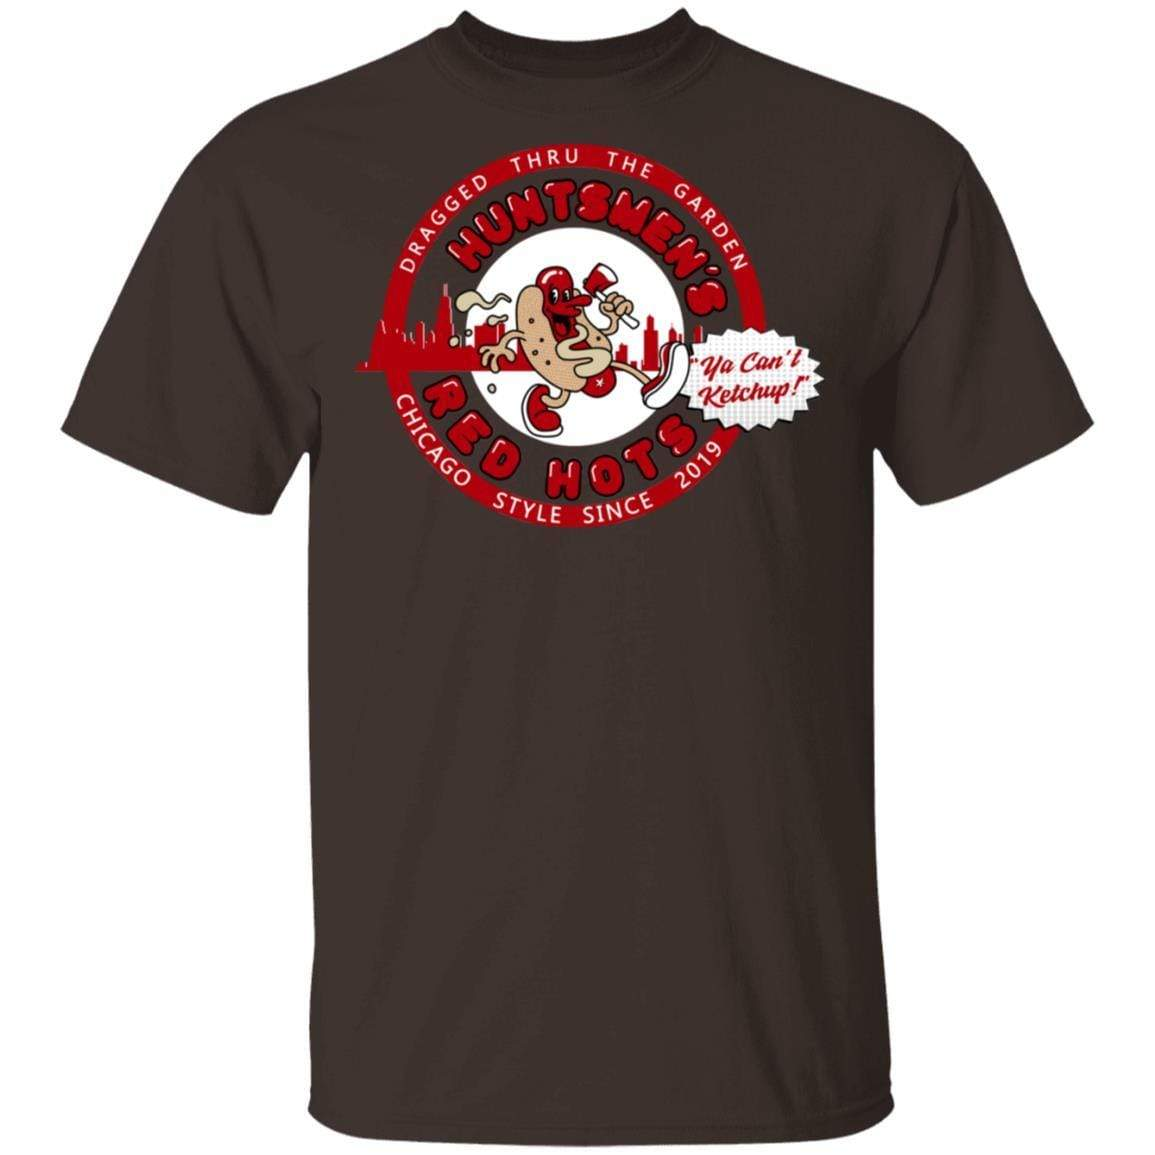 Huntsmen's Red Hots Ya Can't Ketchup Chicago Style 2019 T-Shirts, Hoodies 1049-9956-88445034-48152 - Tee Ript